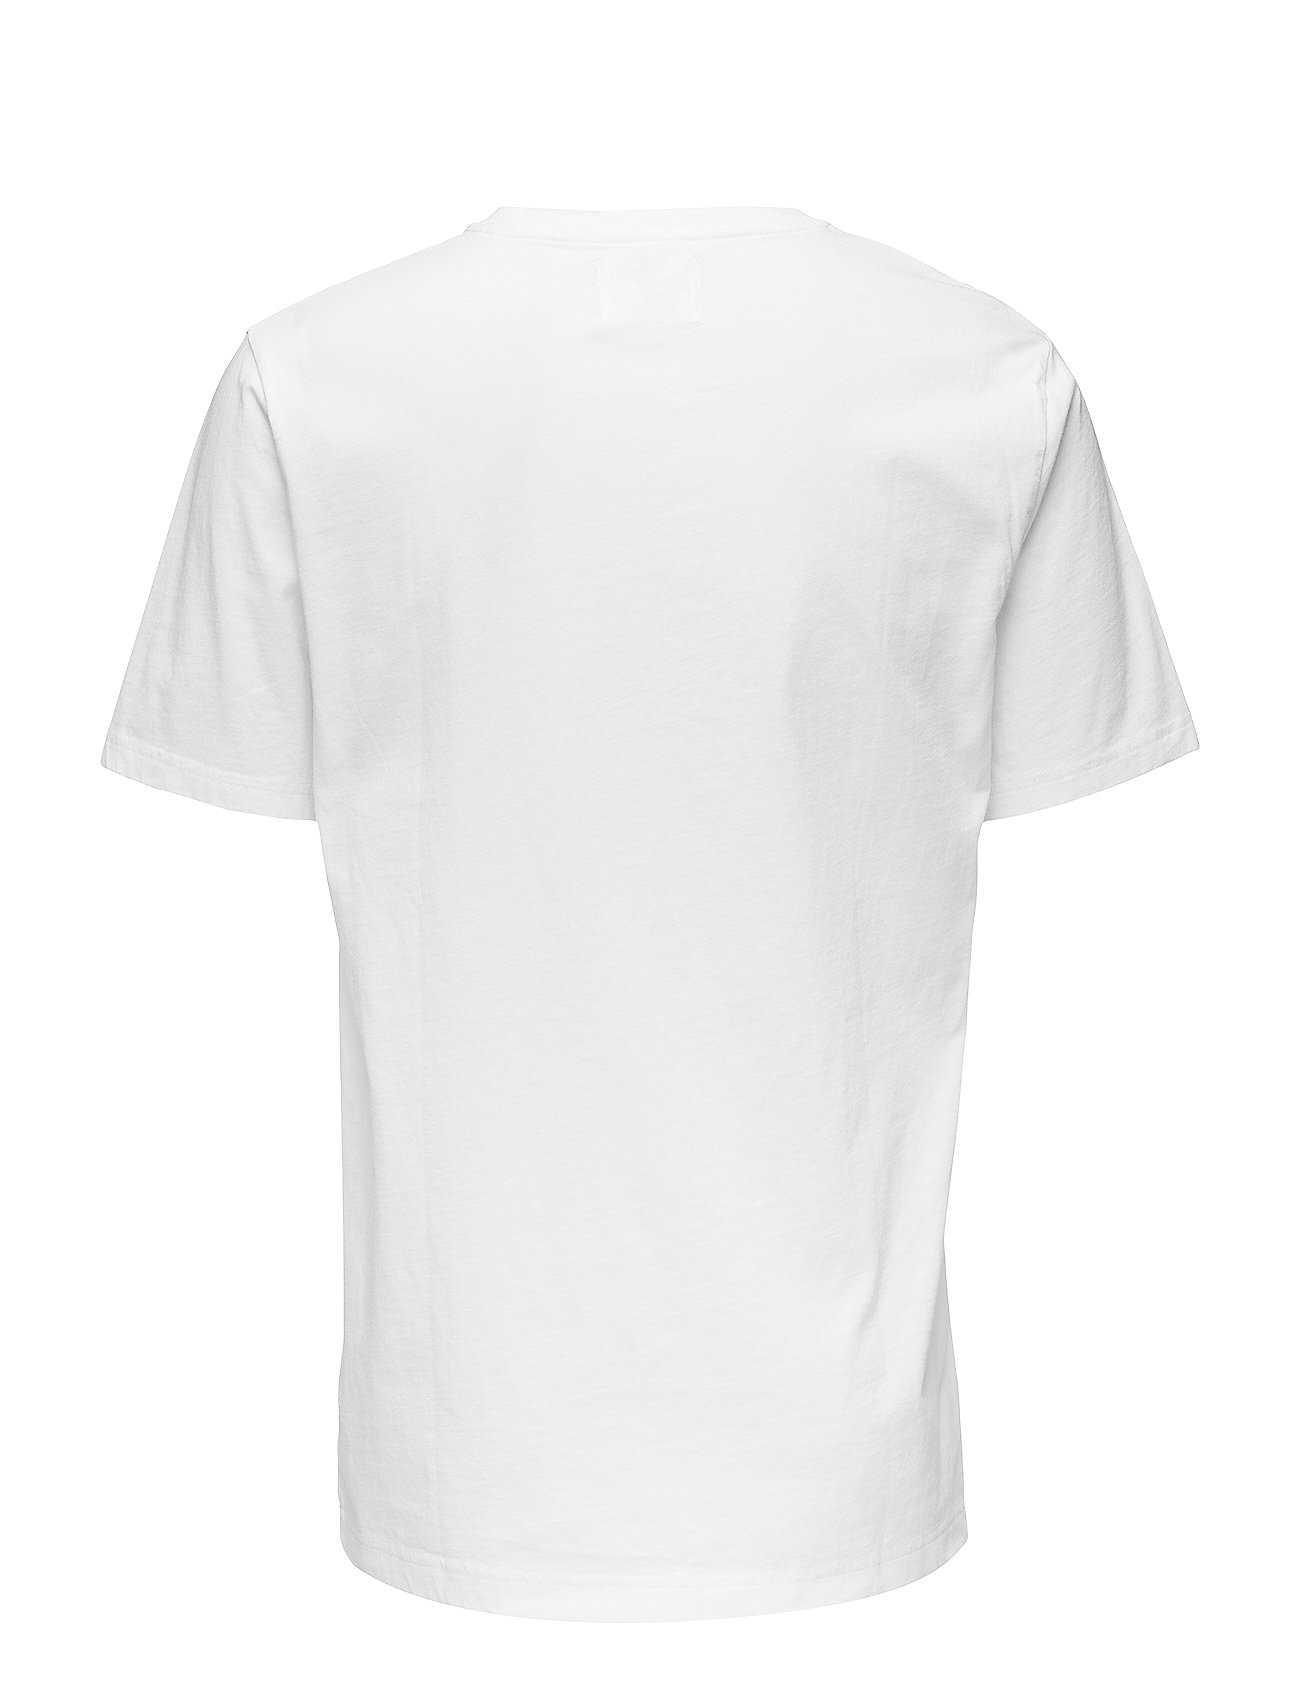 WhiteWood Ace T Ace shirtbright T EDWH9eIY2